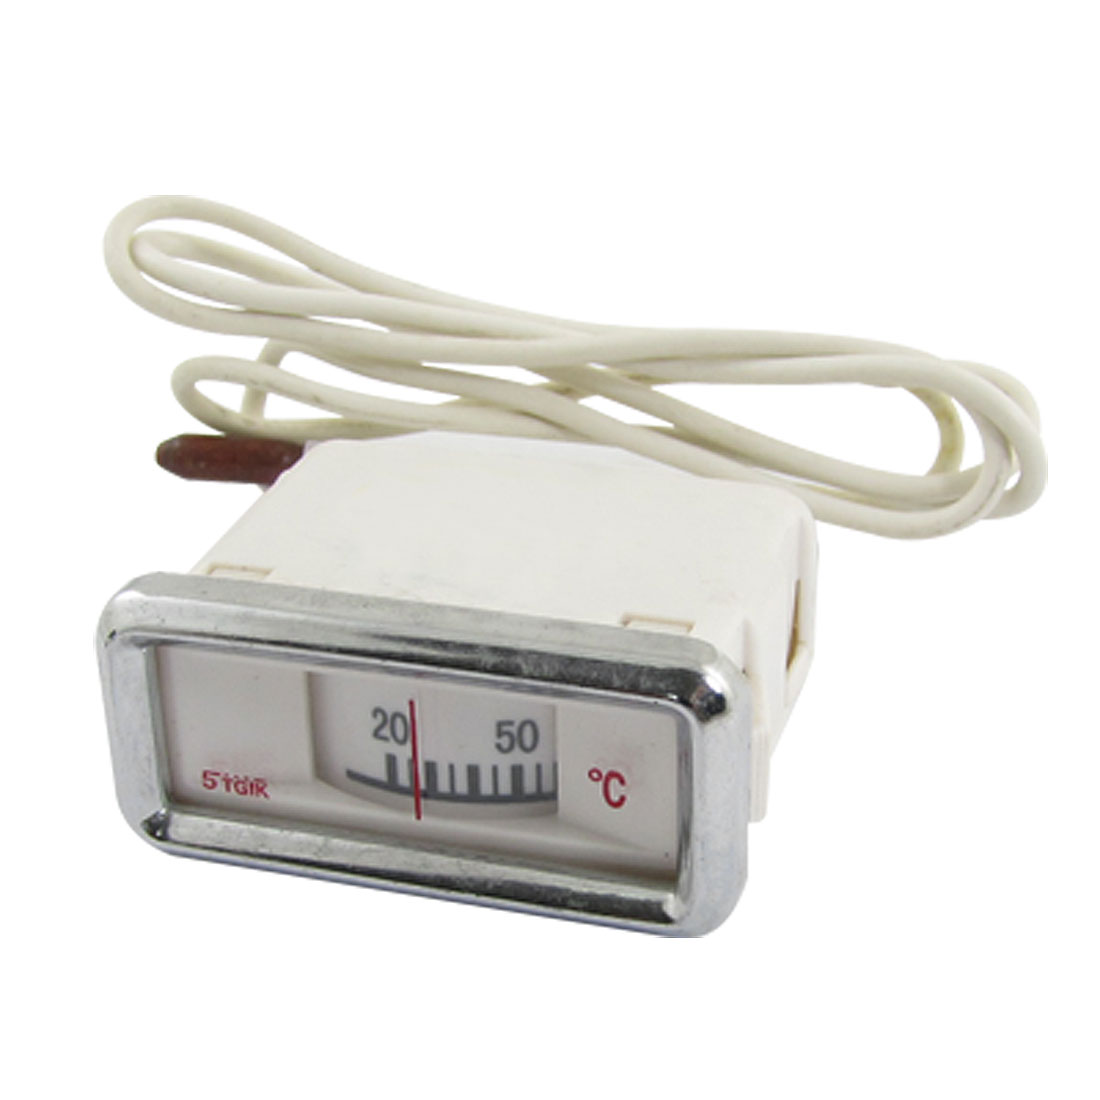 20-110 Celsius Temperature Thermometer for Hot Water Boiler